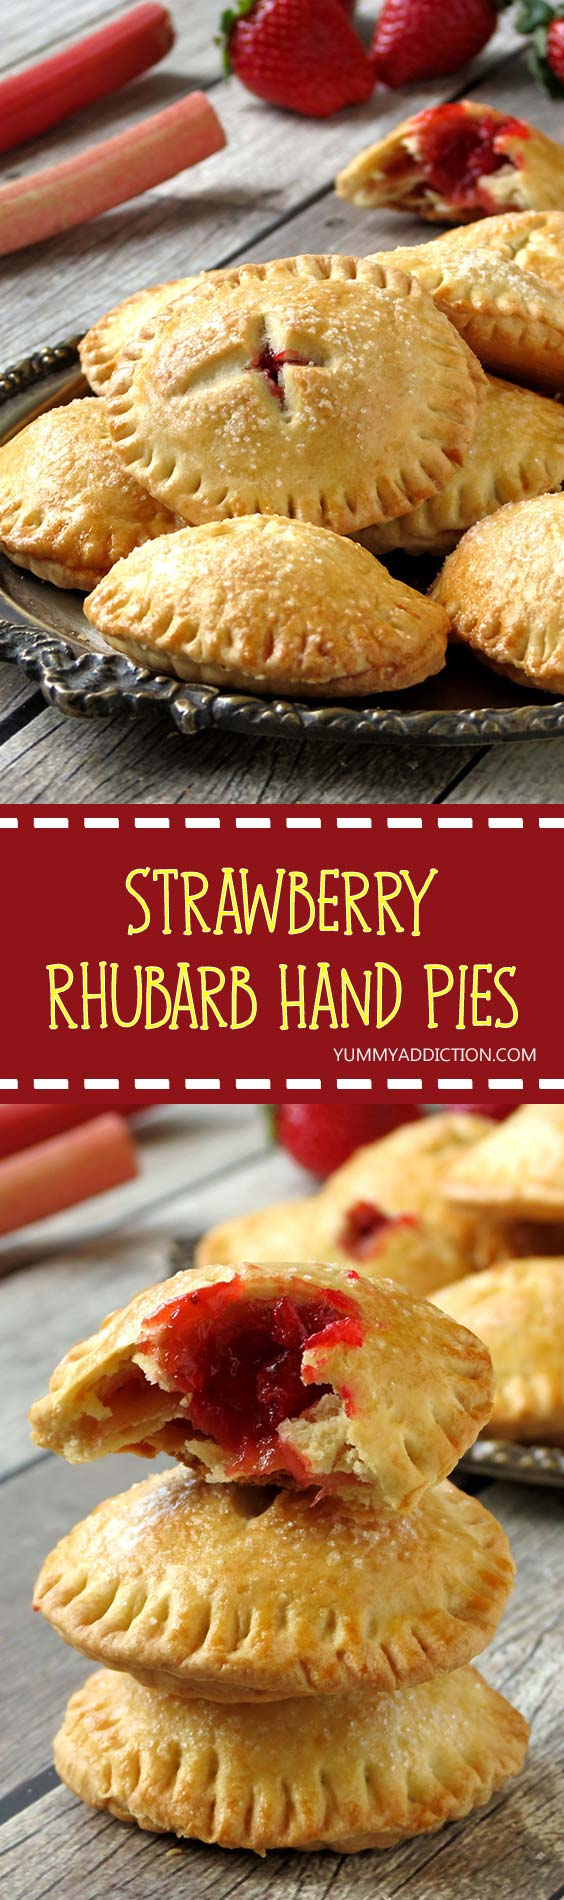 Strawberry Rhubarb Hand Pies | yummyaddiction.com